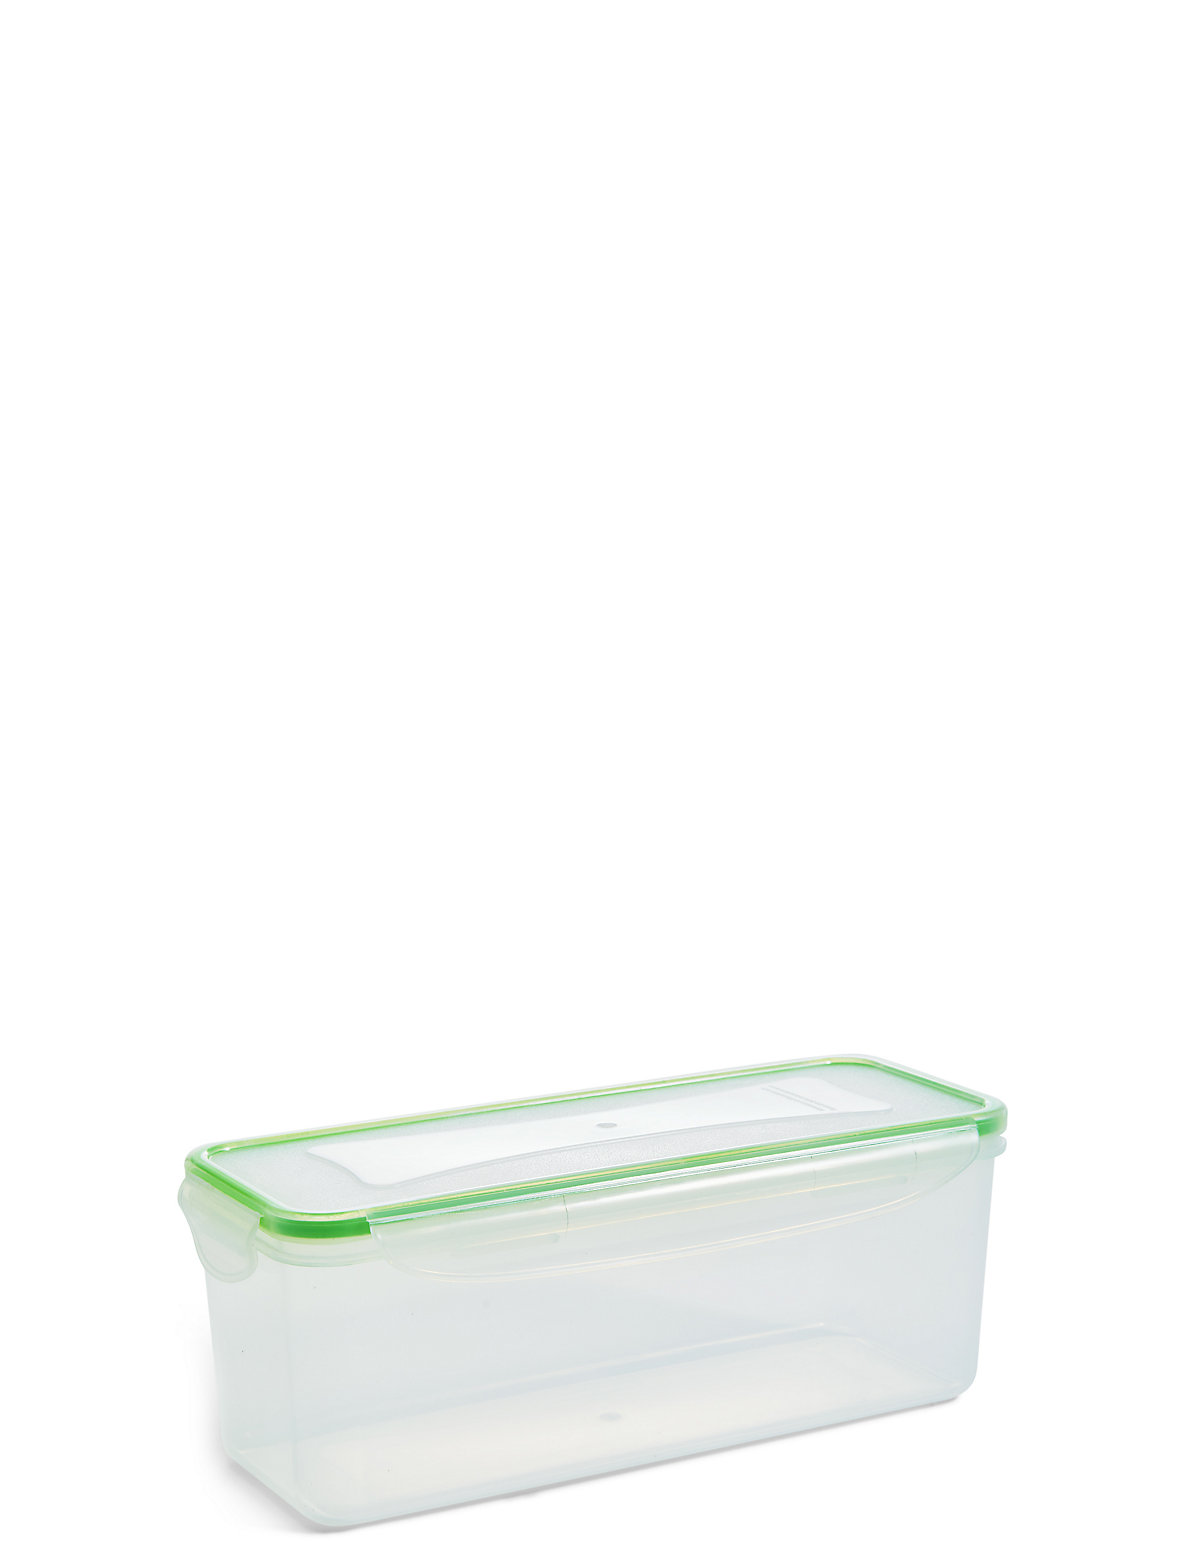 2 Litre Rectangular Clip Storage